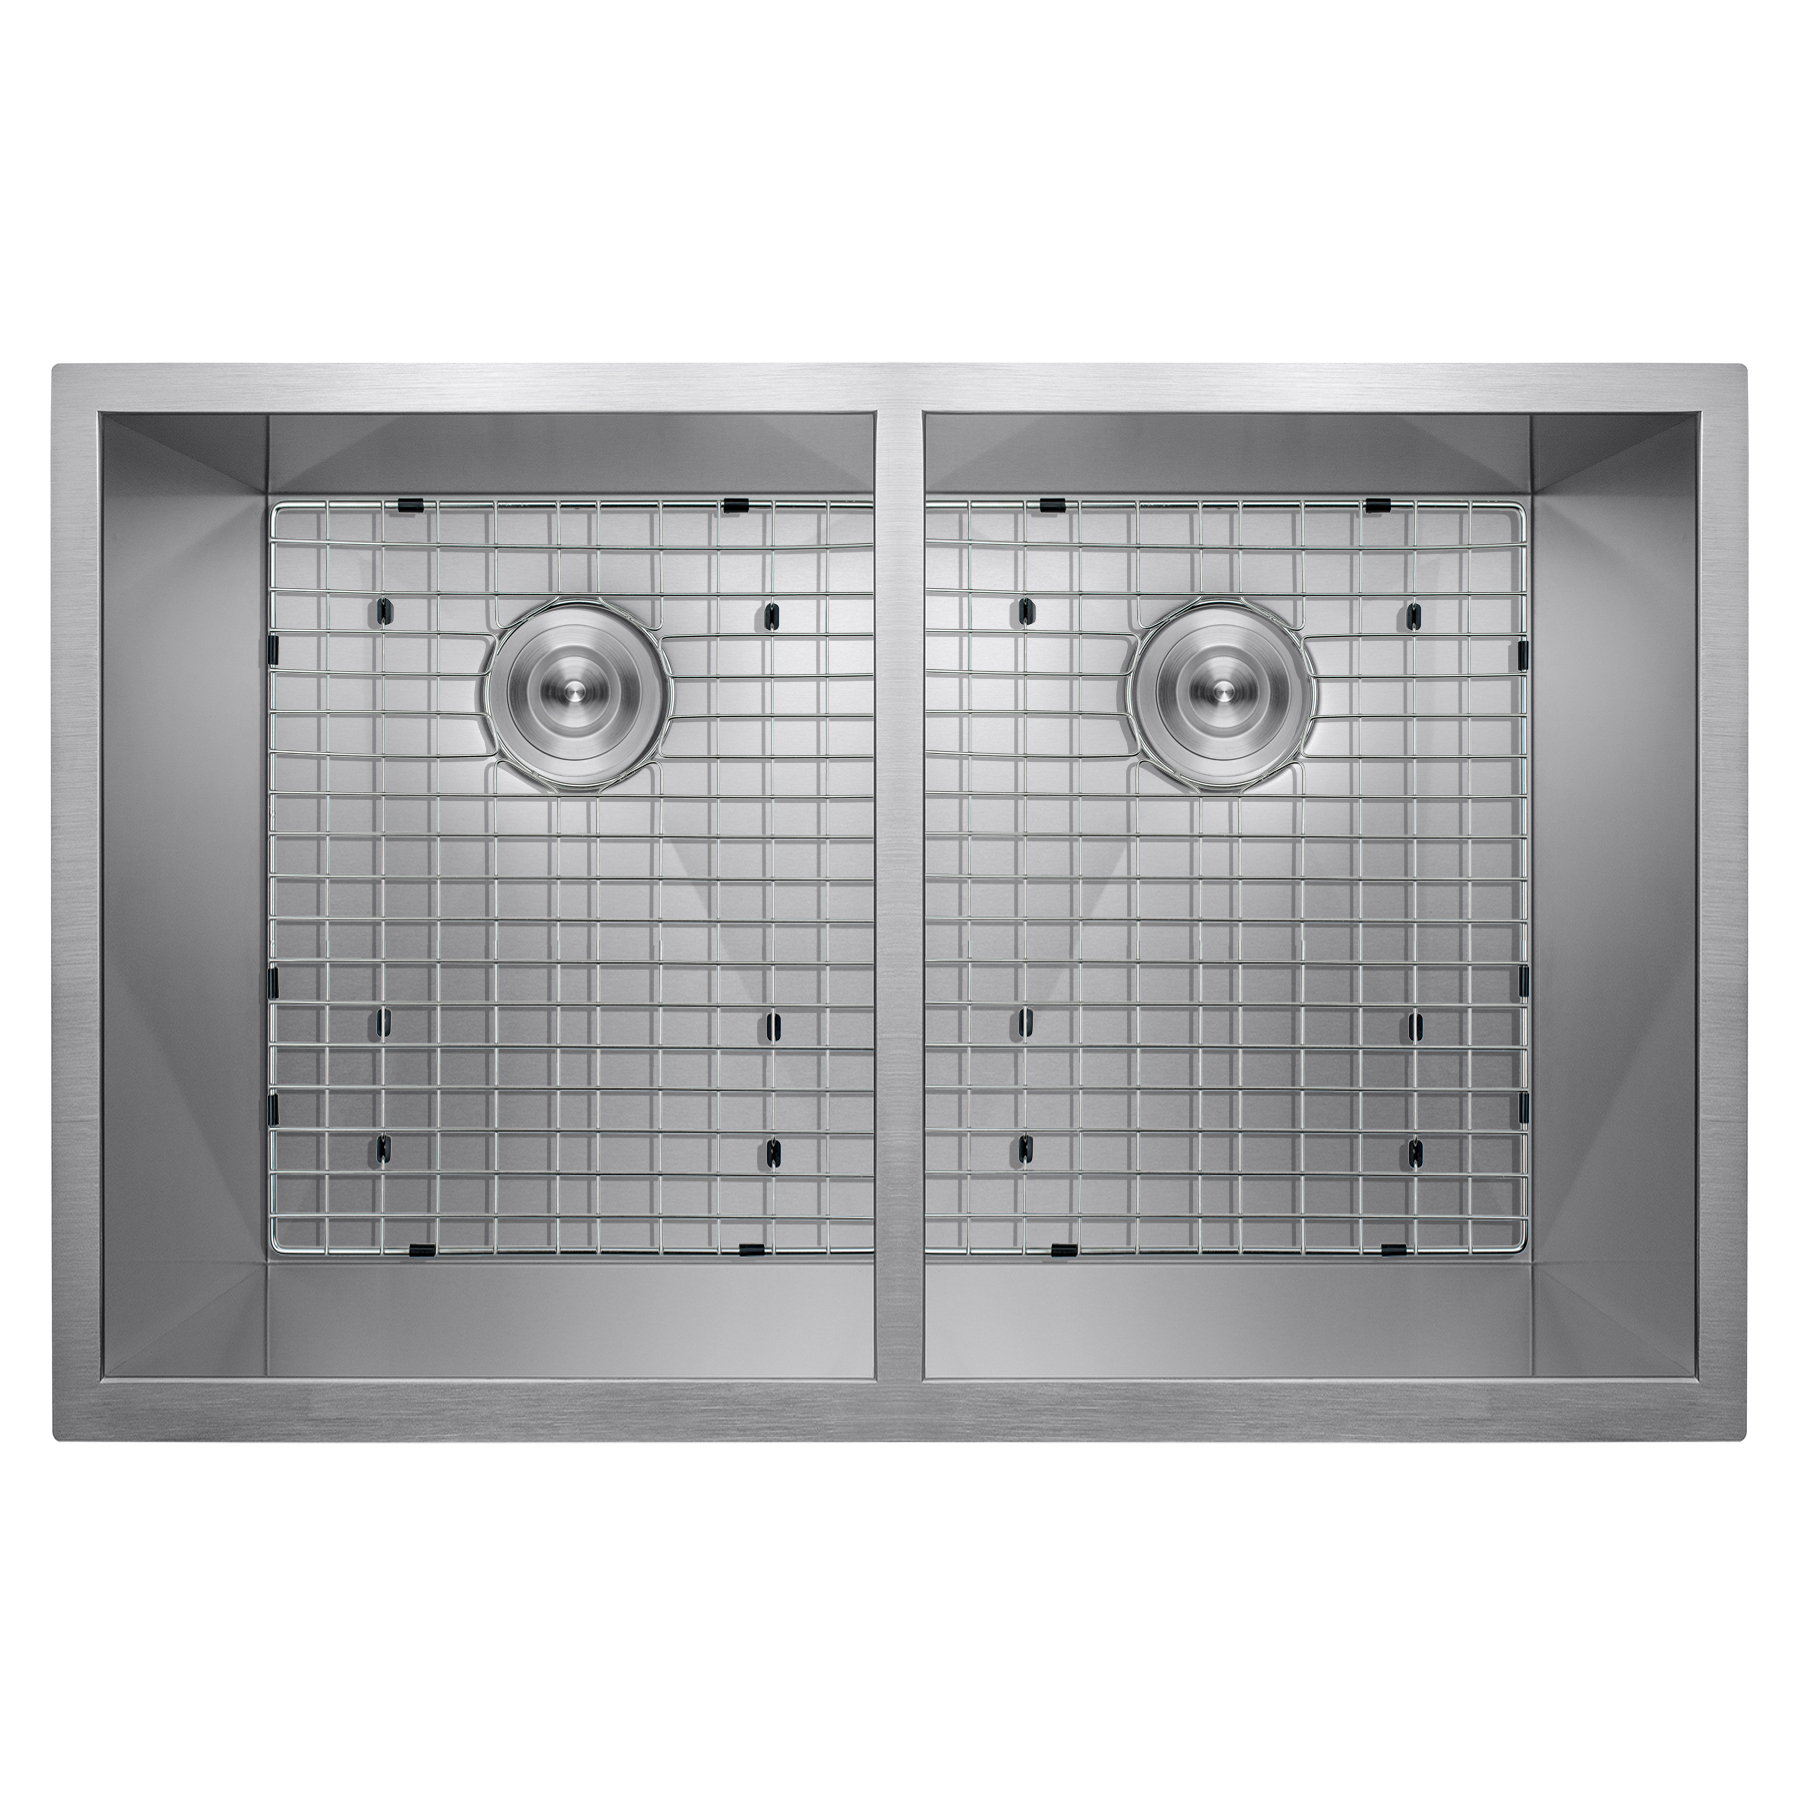 "Image of AKDY 33"" x 22"" x 9"" Handmade Under Mount Dual Basin 50/50 Stainless Steel Kitchen Sink Dish Grid w/ Drain Kit"